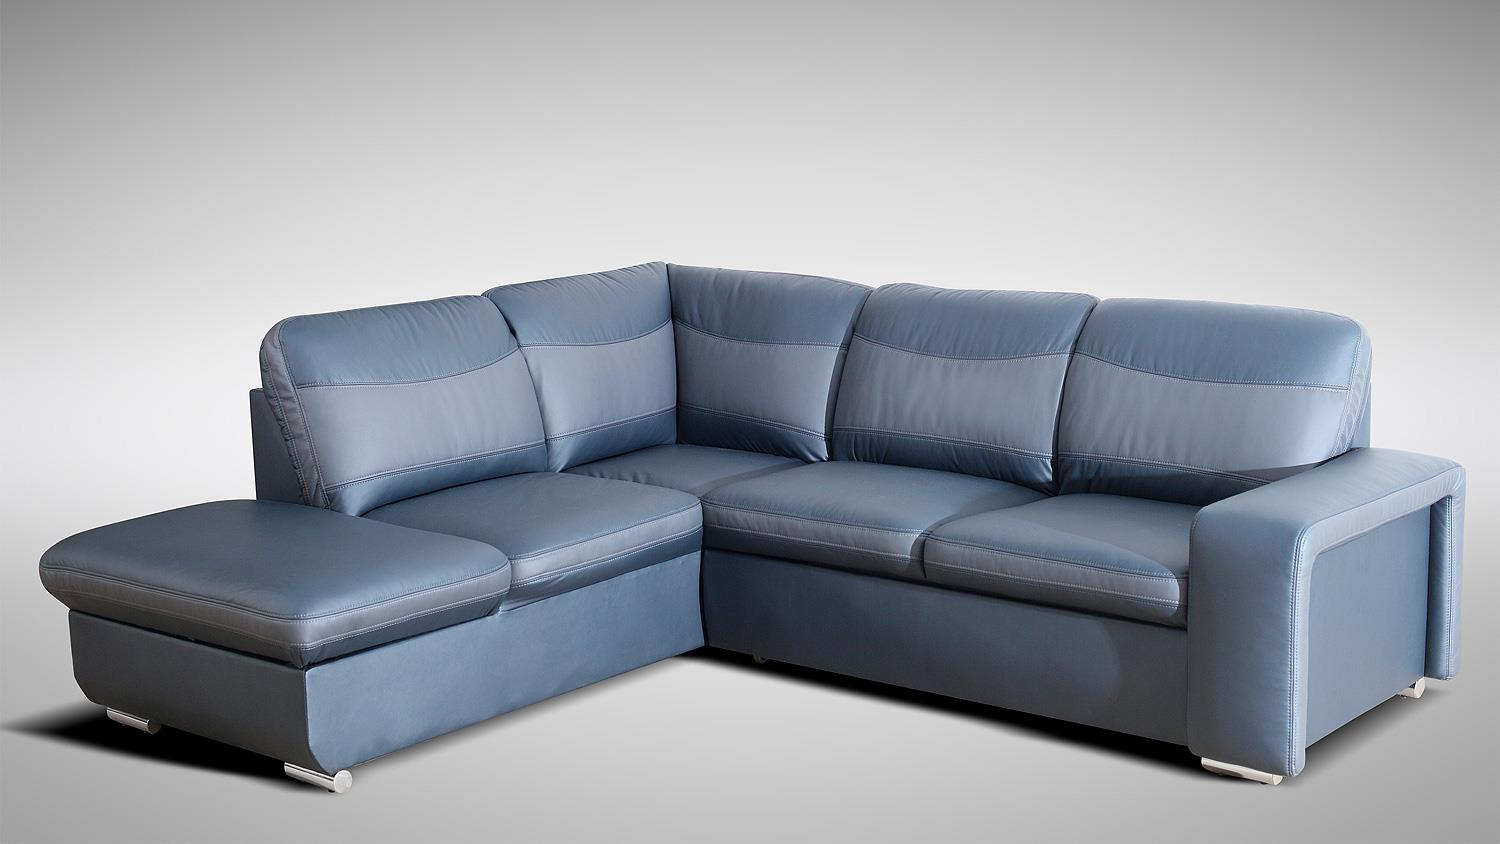 ecksofa road blau grau inkl funktion nosagfederung links. Black Bedroom Furniture Sets. Home Design Ideas